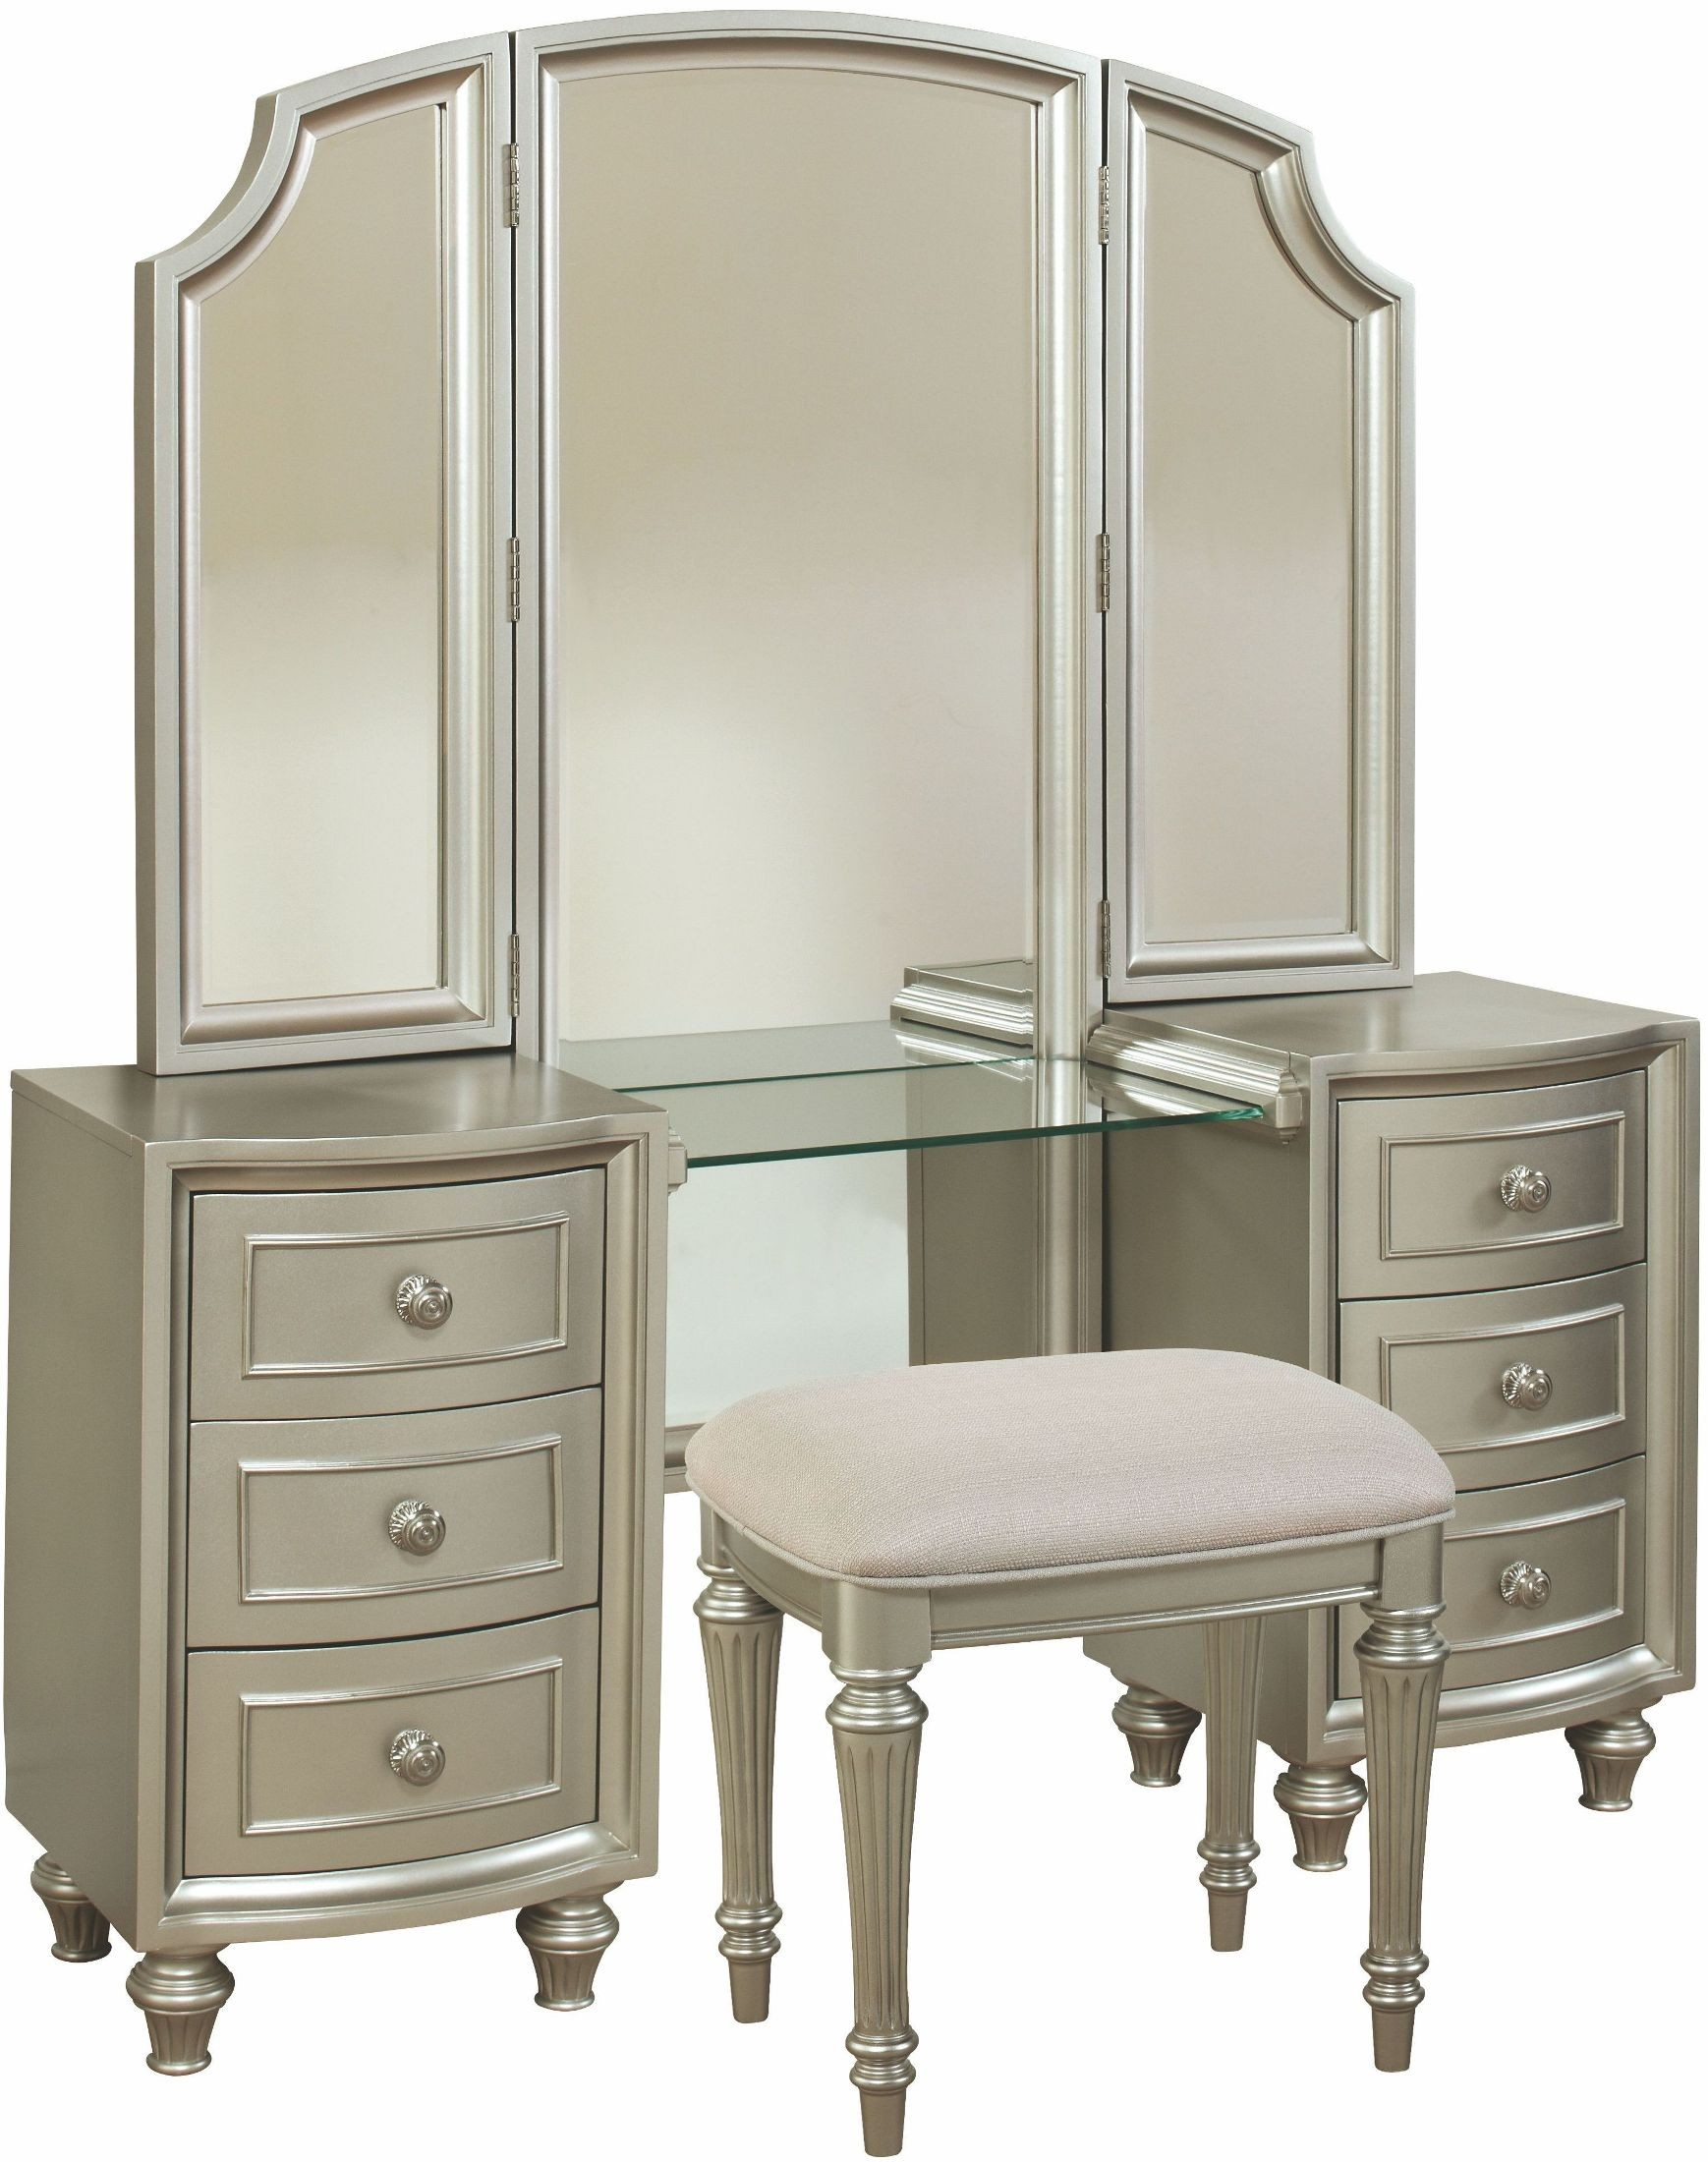 Regency park pearlized silver panel bedroom set b00481 5h for Silver bedroom furniture